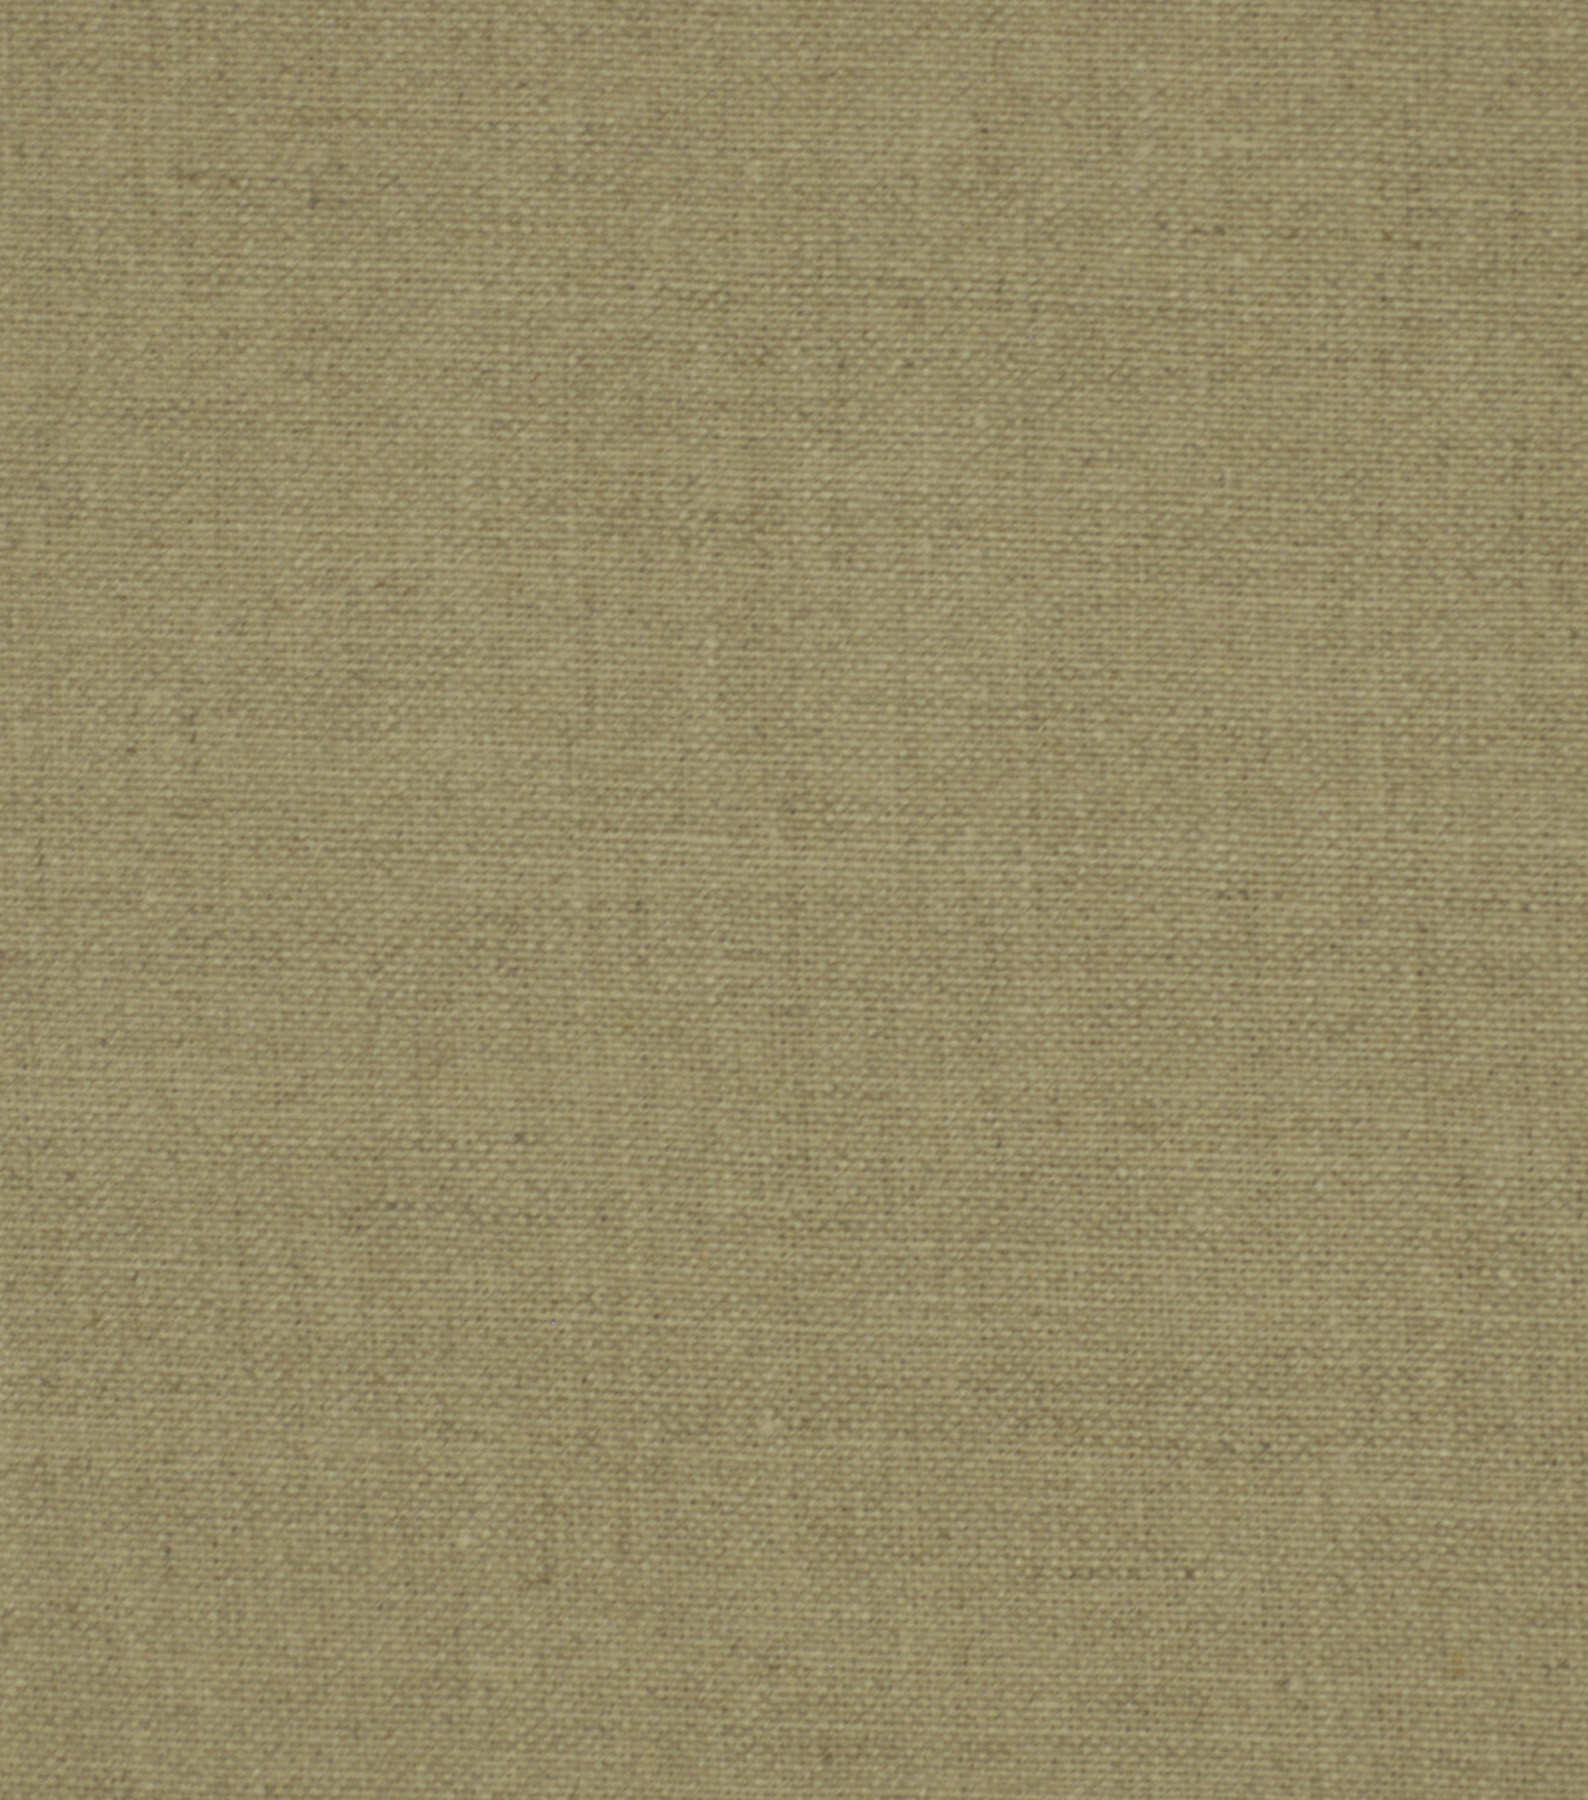 Robert Allen @ Home Solid Fabric Fabric 54\u0022-Kilrush Natural